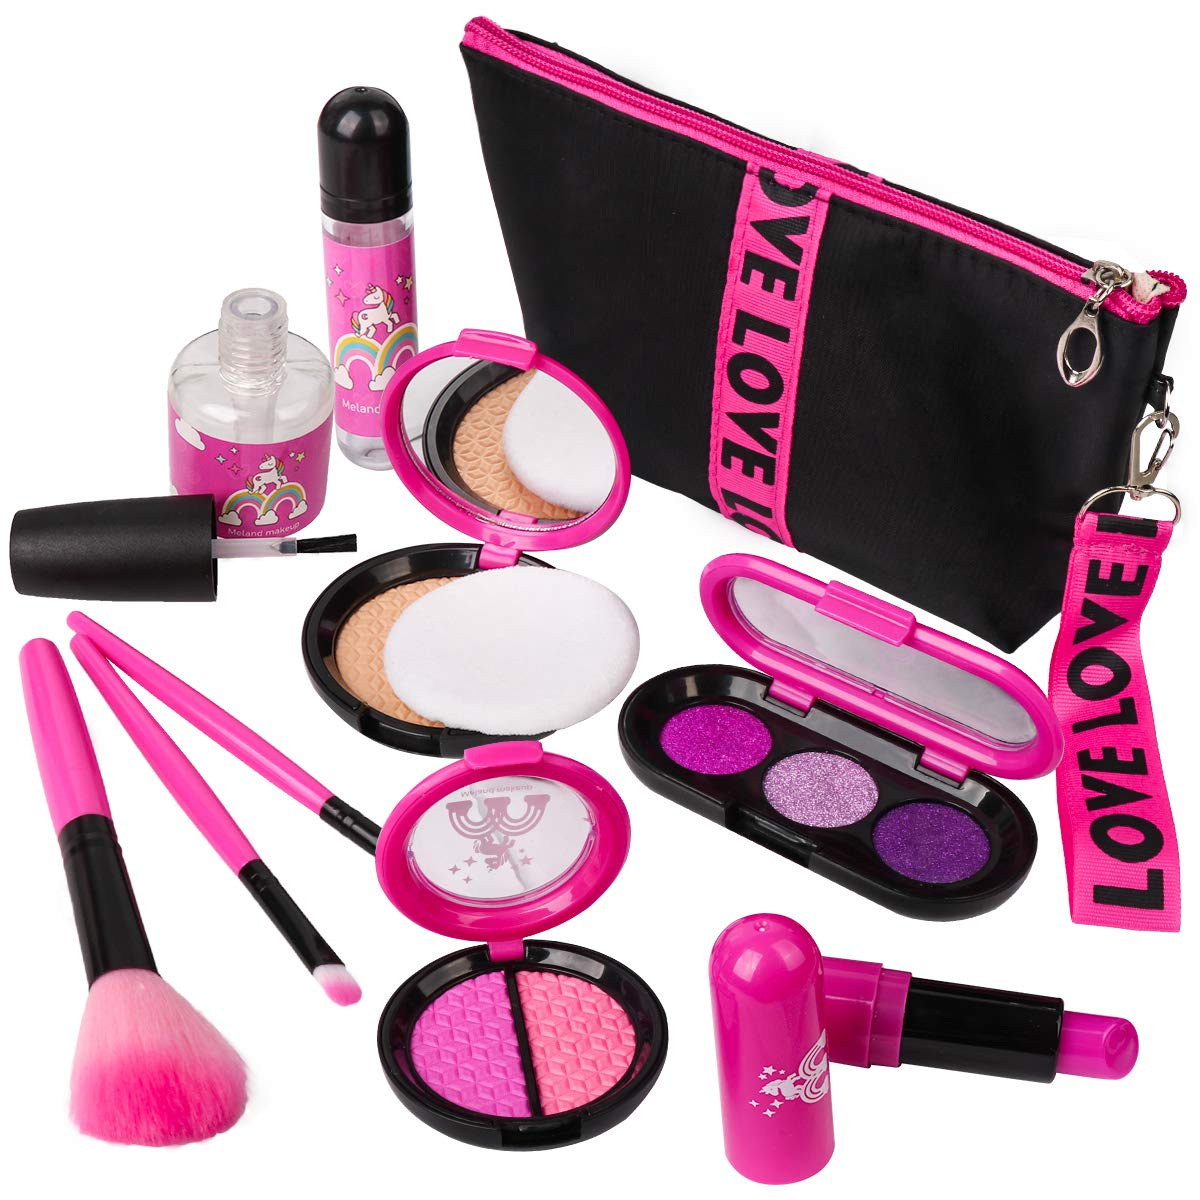 Girls Pretend Play Makeup Sets - LOYO Fake Make Up Kits with Cosmetic Bag for Little Girls Birthday Christmas Holiday Gift, Toy Makeup Set for Toddler Girls Age 2, 3, 4, 5 (Not Real Makeup) by LOYO